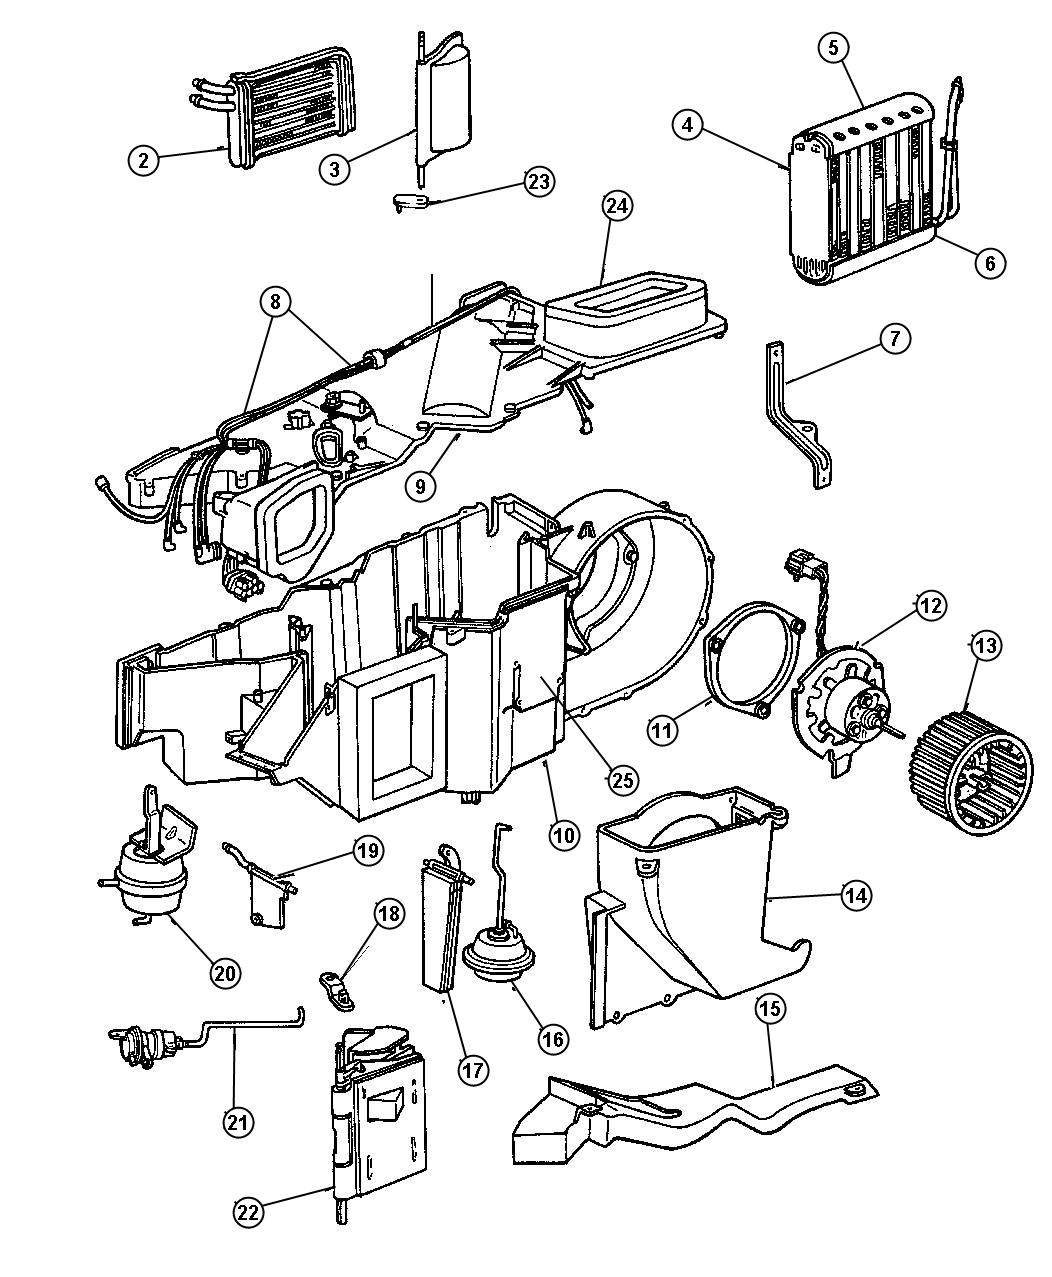 Grand Marquis Repair Diagrams